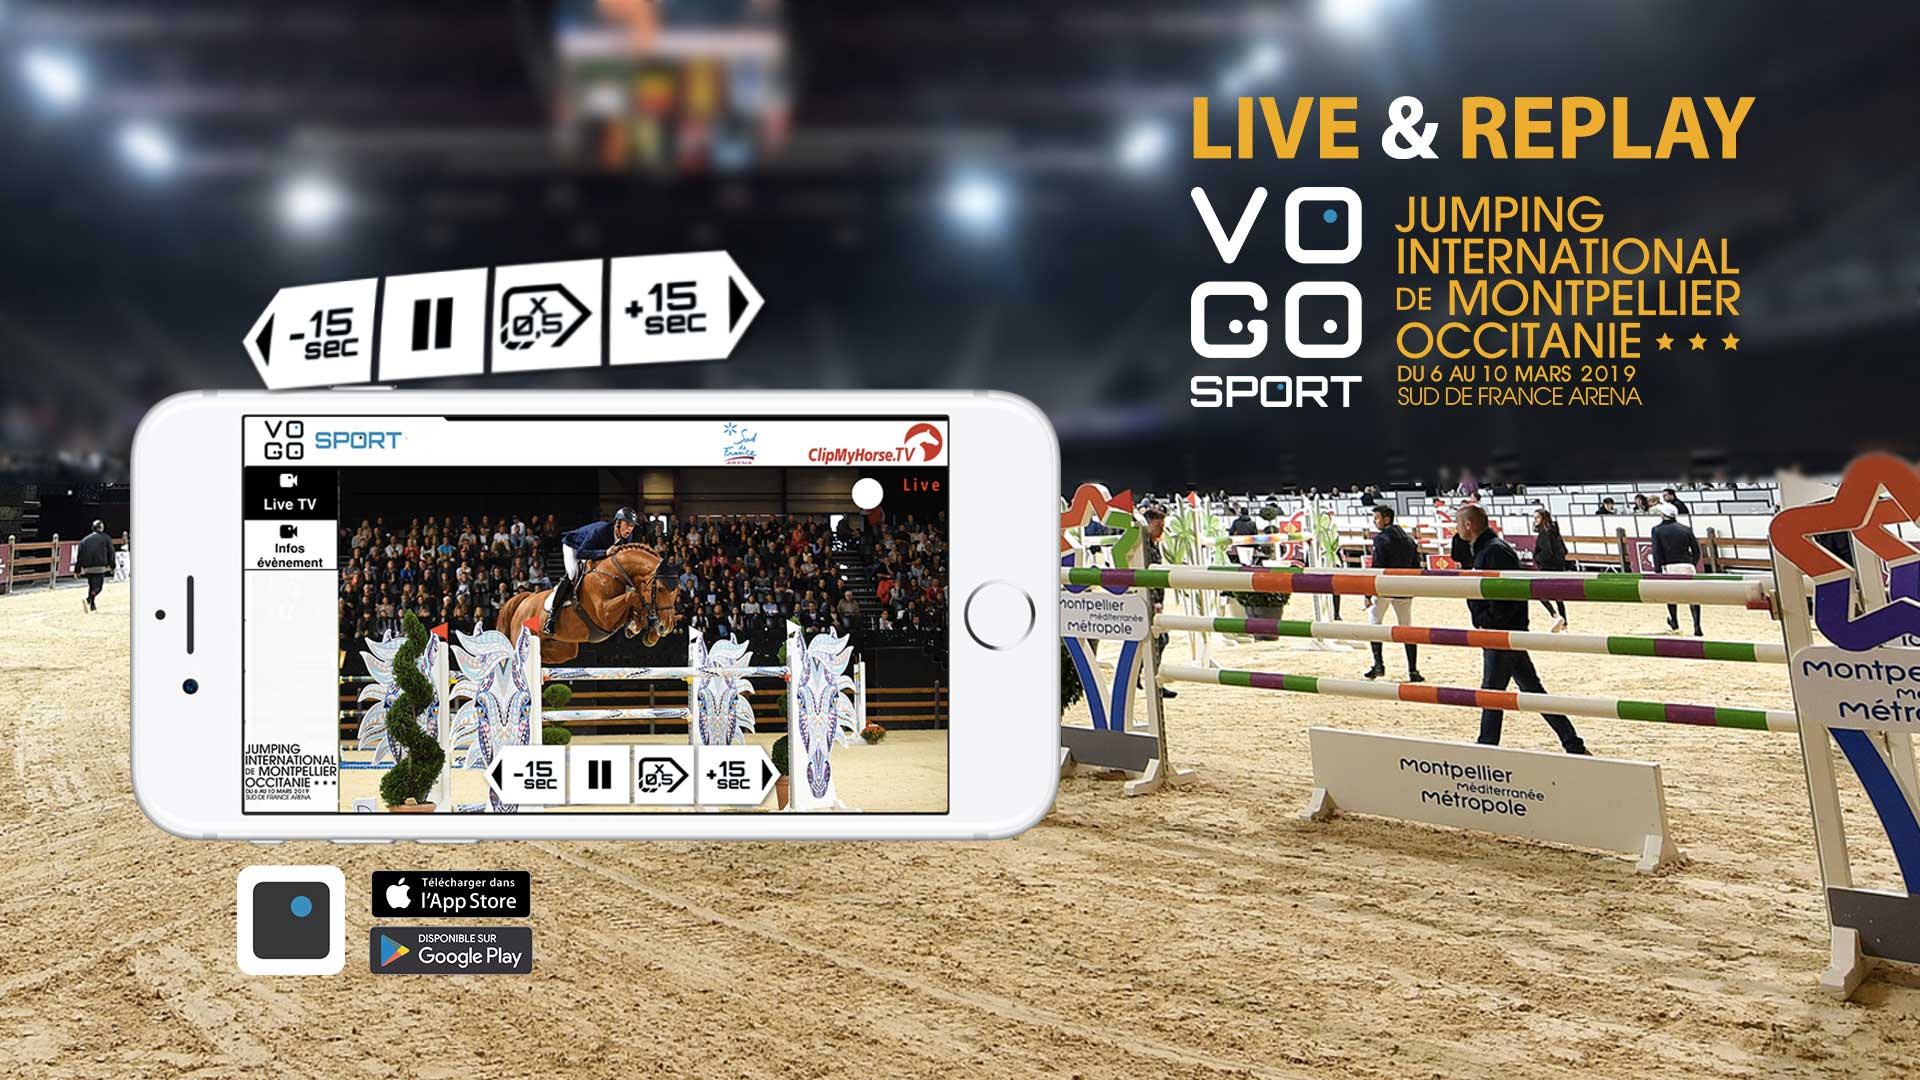 VOGO SPORT at International Jumping of Montpellier Occitanie